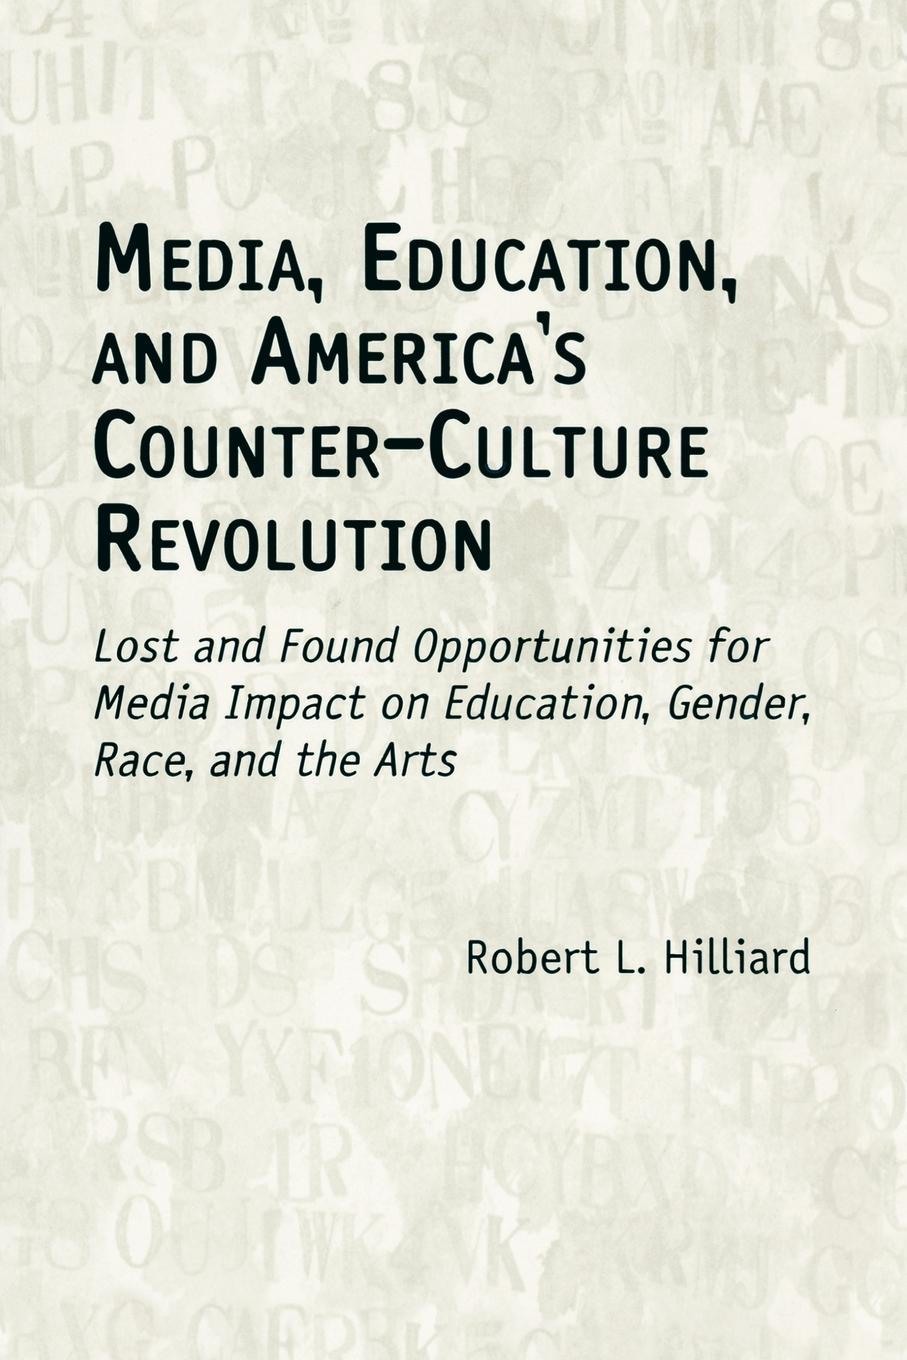 Robert L. Hilliard Media, Education, and America's Counter-Culture Revolution. Lost and Found Opportunities for Media Impact on Education, Gender, Race, and the Arts an activist handbook for the education revolution united opt out s test of courage